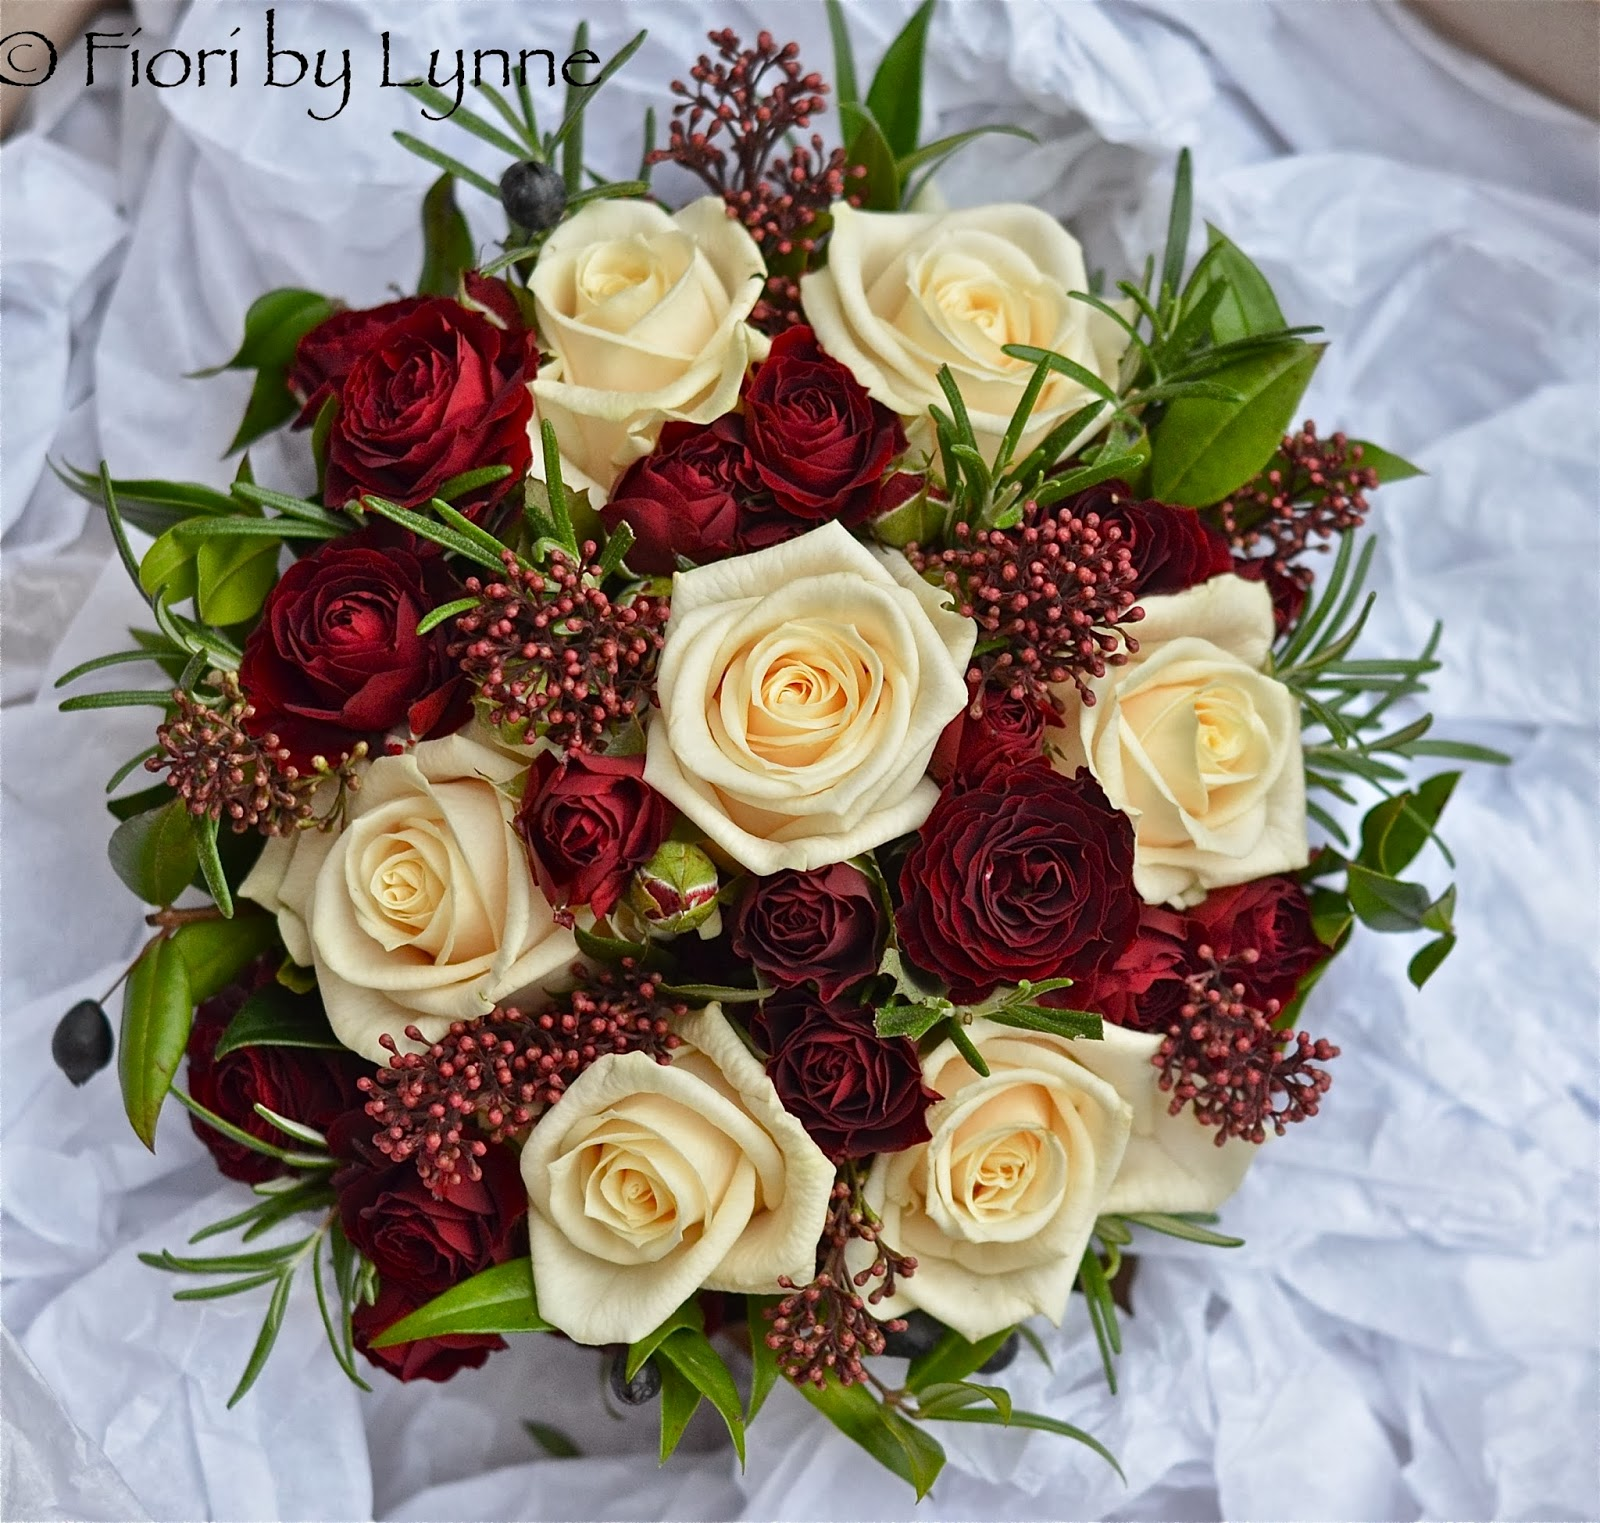 Wedding Flowers Blog: Tracey and Ed\'s Rustic Winter Wedding Flowers ...